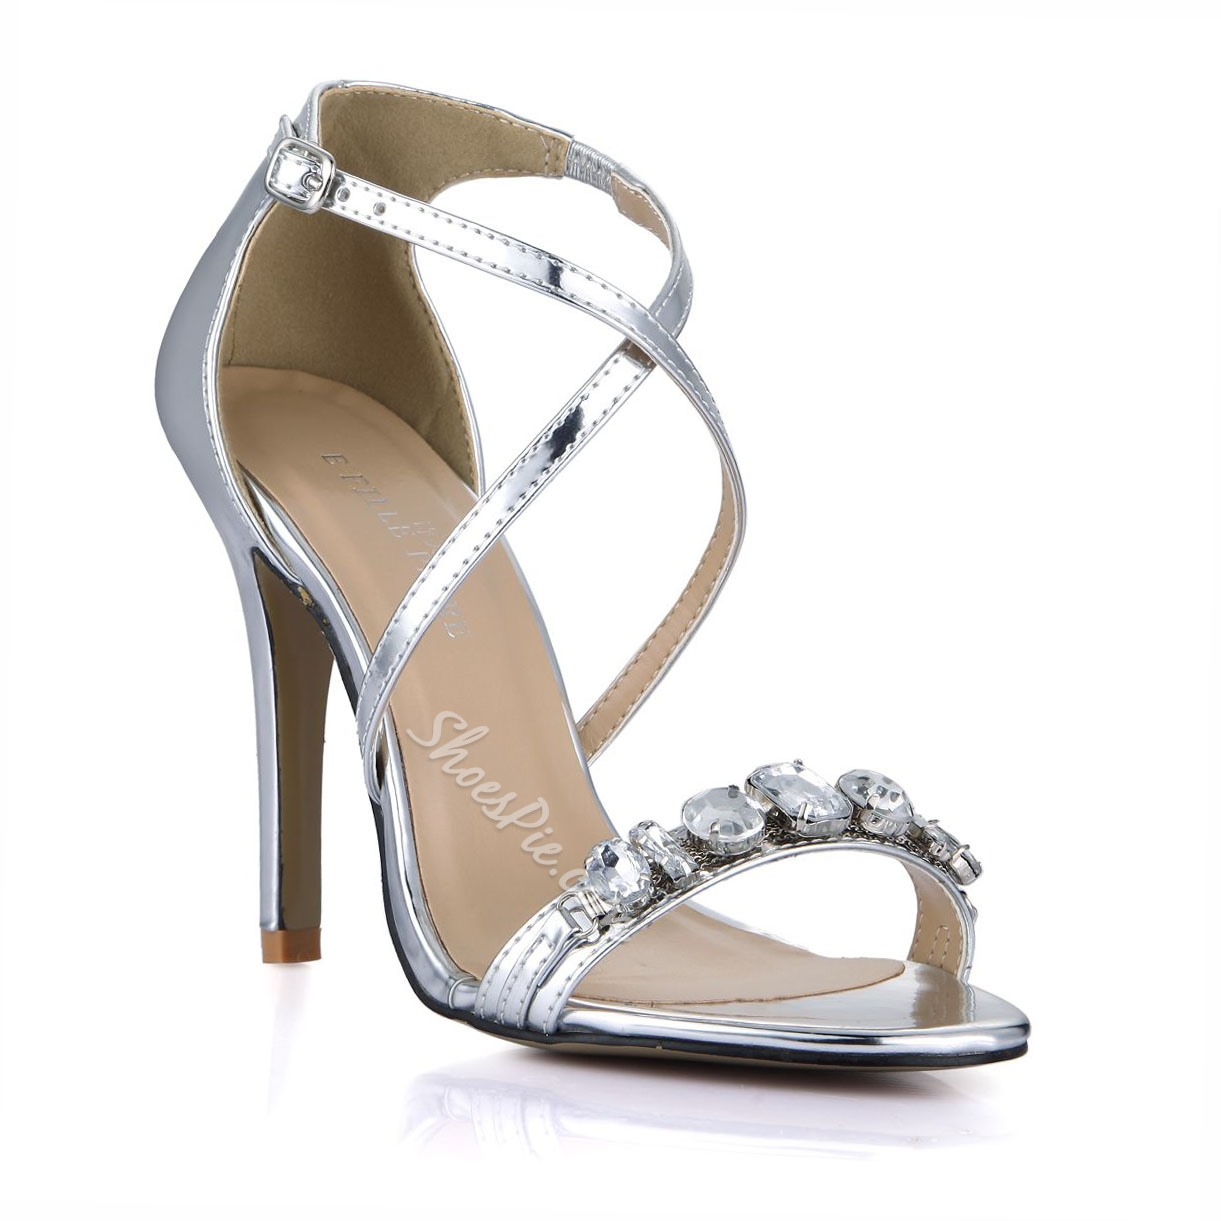 Shoespie Rhinestone Ankle Cross Wrap Dress Sandals